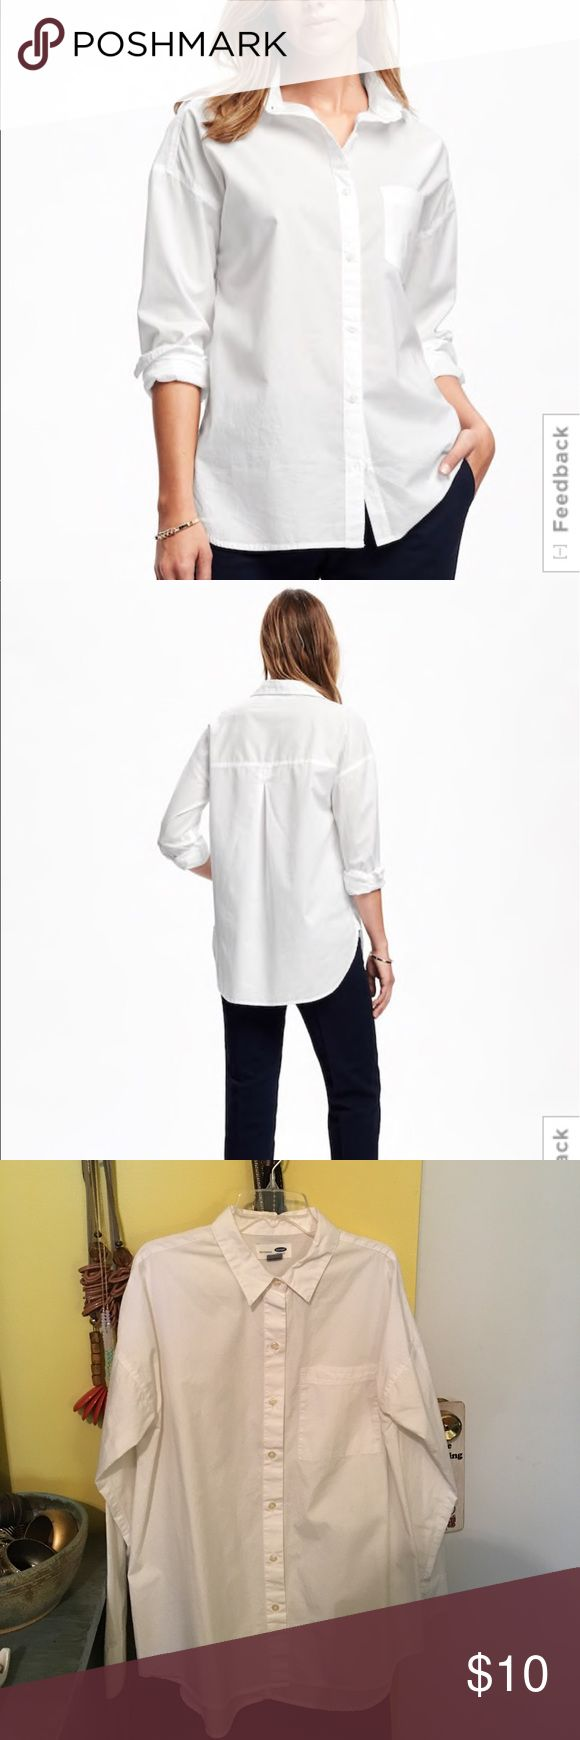 Old Navy Boyfriend White Shirt for Women M Old Navy Boyfriend White Shirt for Women. Size Medium. Color Bright White. No flaws. Rarely worn. Old Navy Tops Button Down Shirts